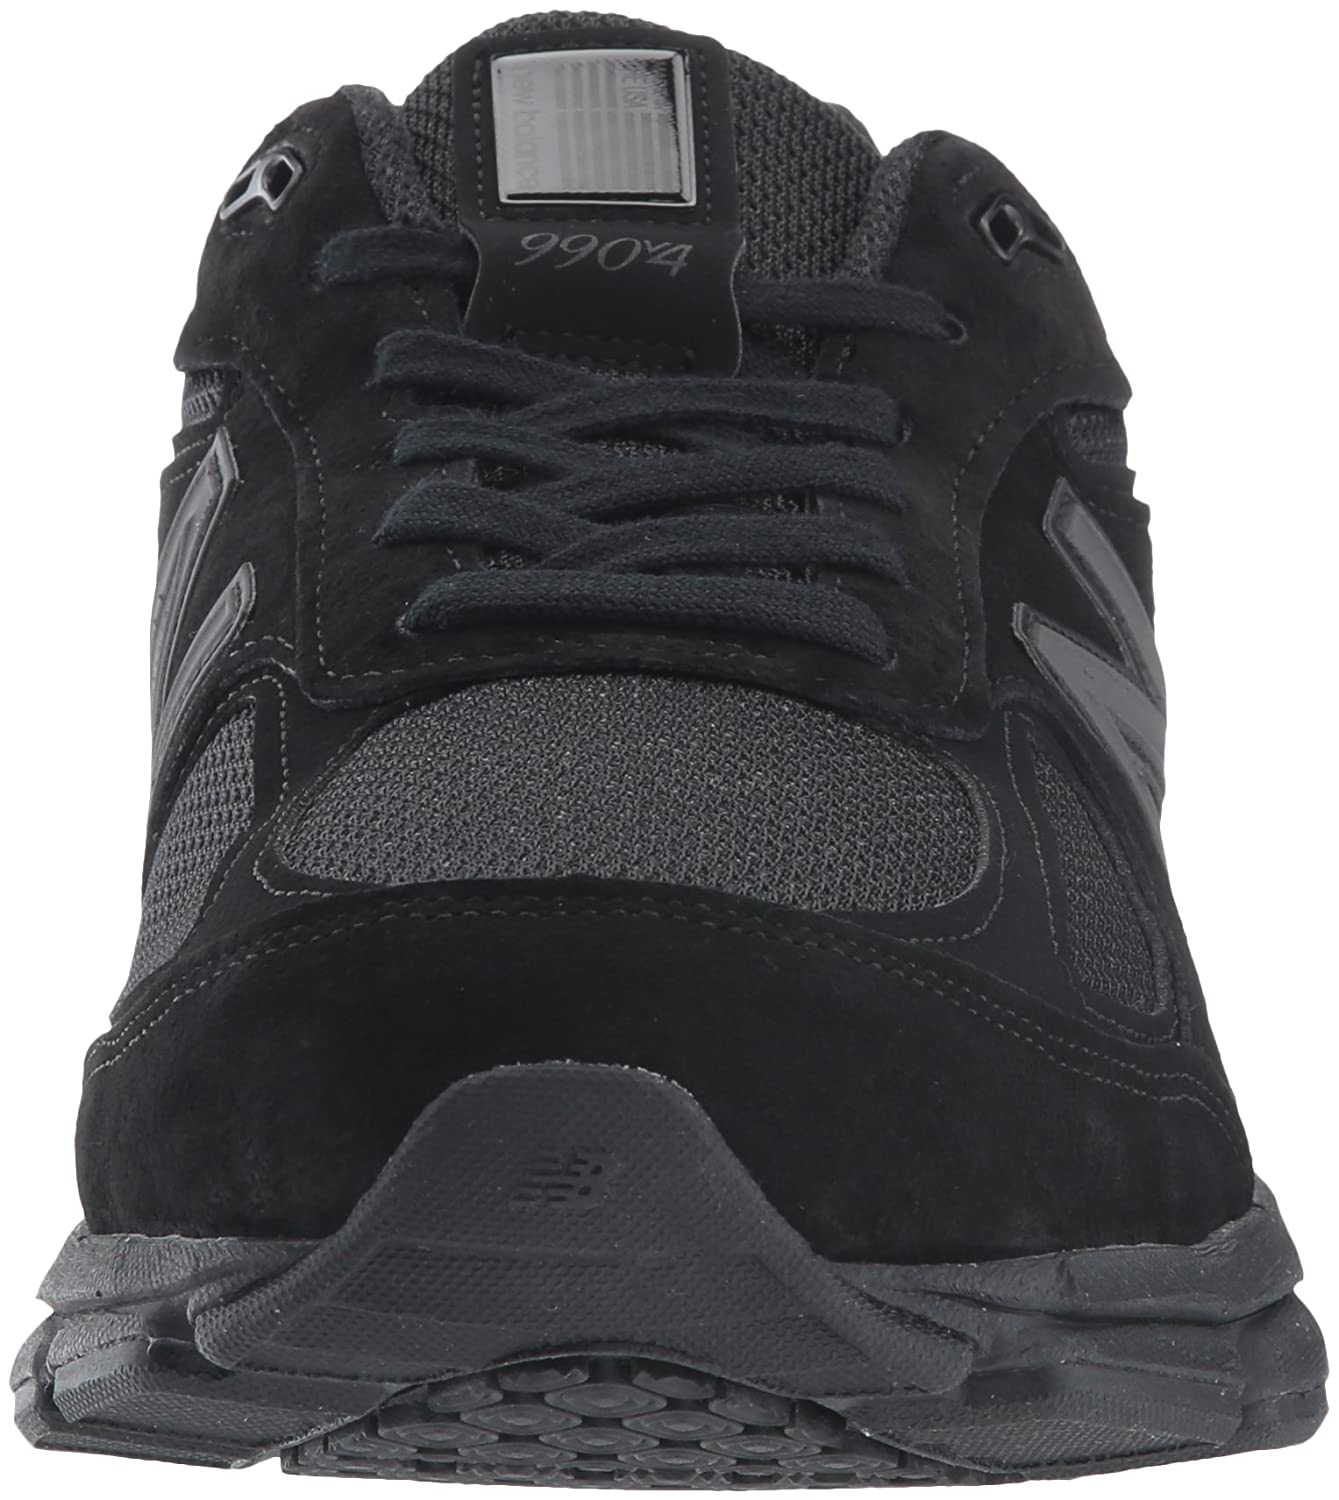 New-Balance-990-990v4-Classicc-Retro-Fashion-Sneaker-Made-in-USA thumbnail 17